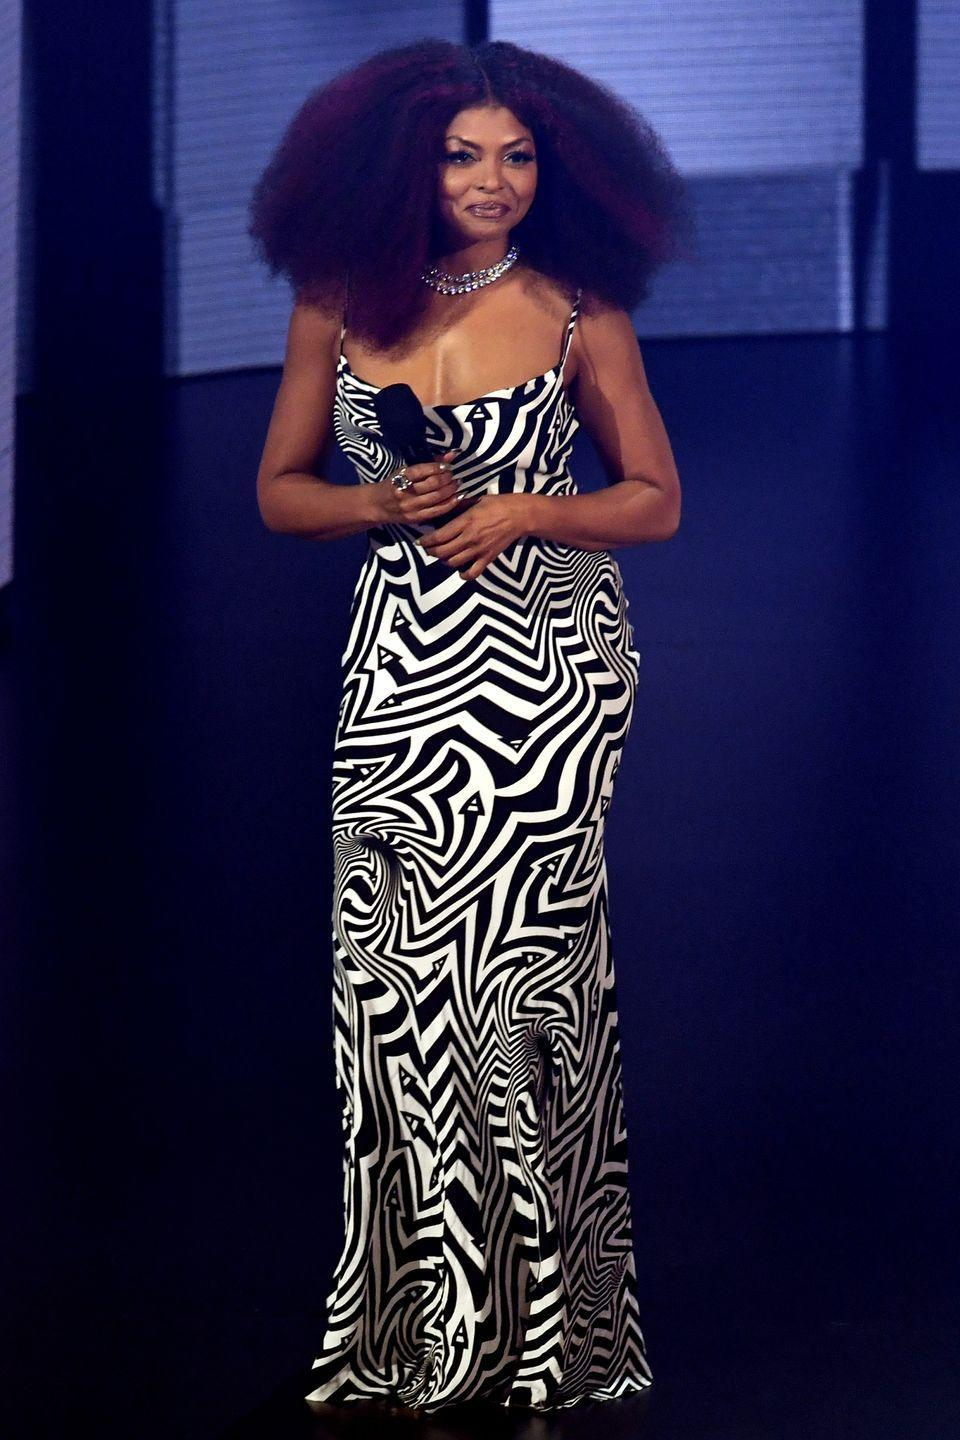 <p><strong>22 November </strong>Taraji P. Henson hosted this year's American Music Awards wearing the most statement ensembles, like this patterned Area dress. </p>